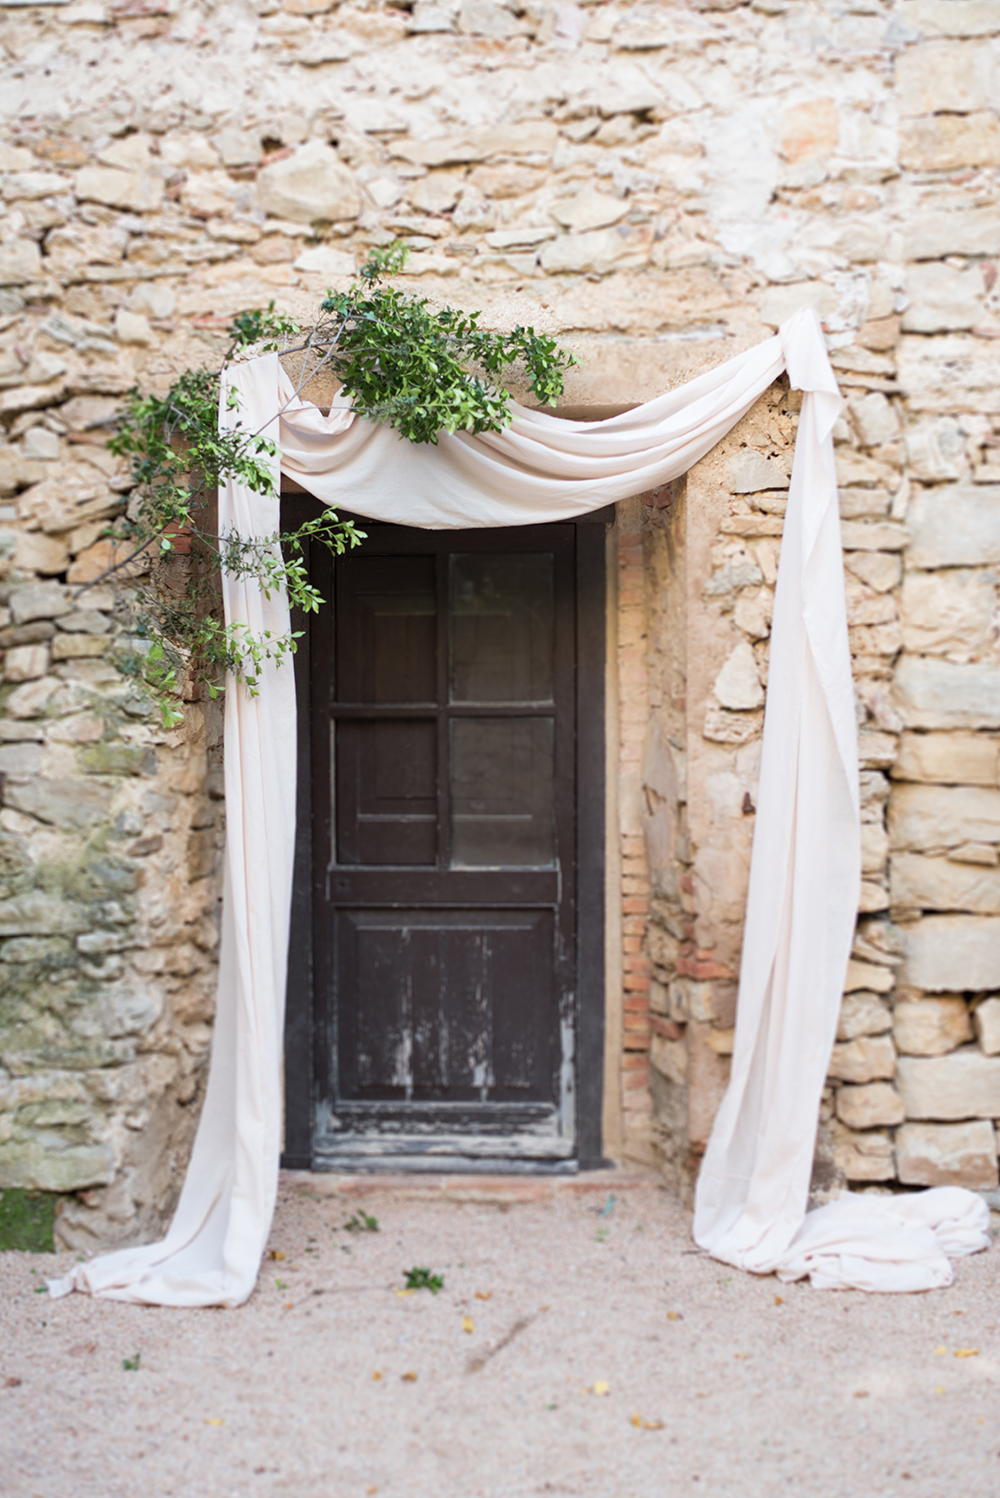 wedding ceremony decor photo by Mireia Cordomi